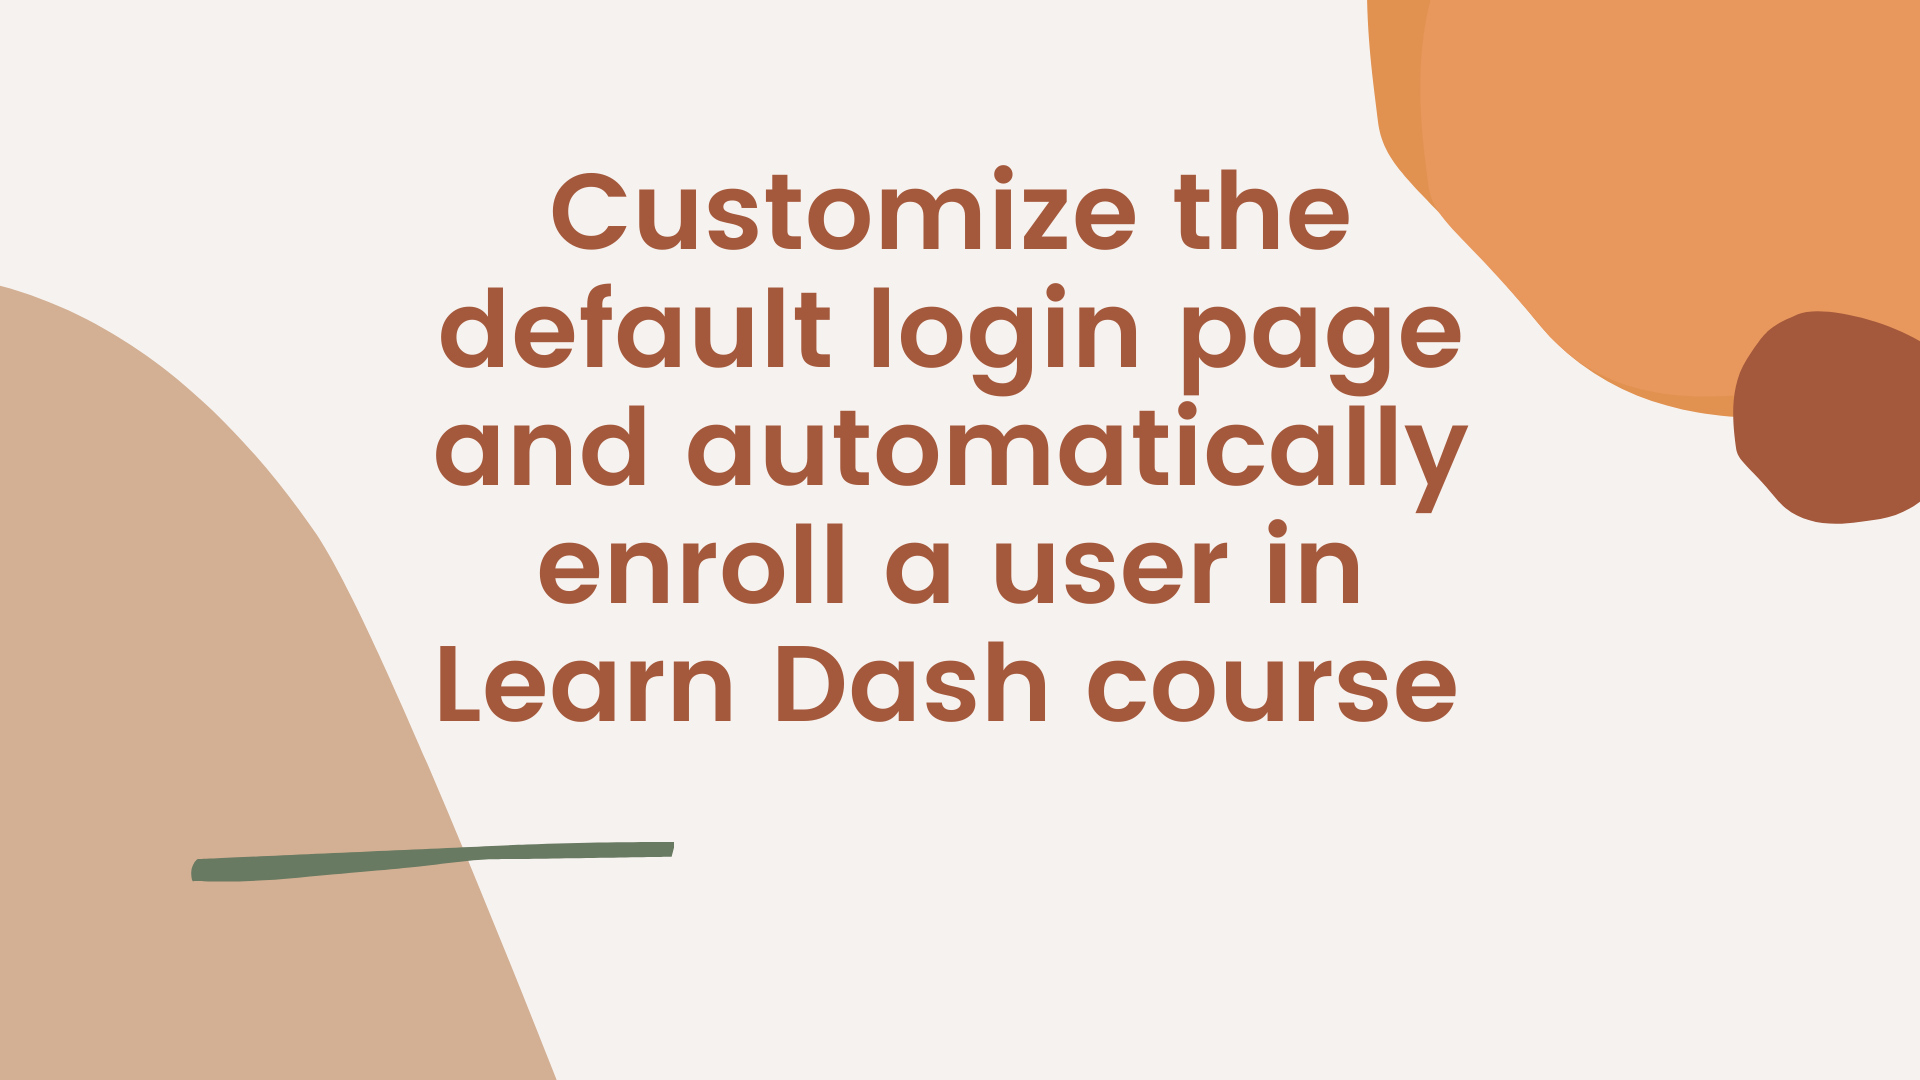 How to Customize the default login page and automatically enroll a user in LearnDash course